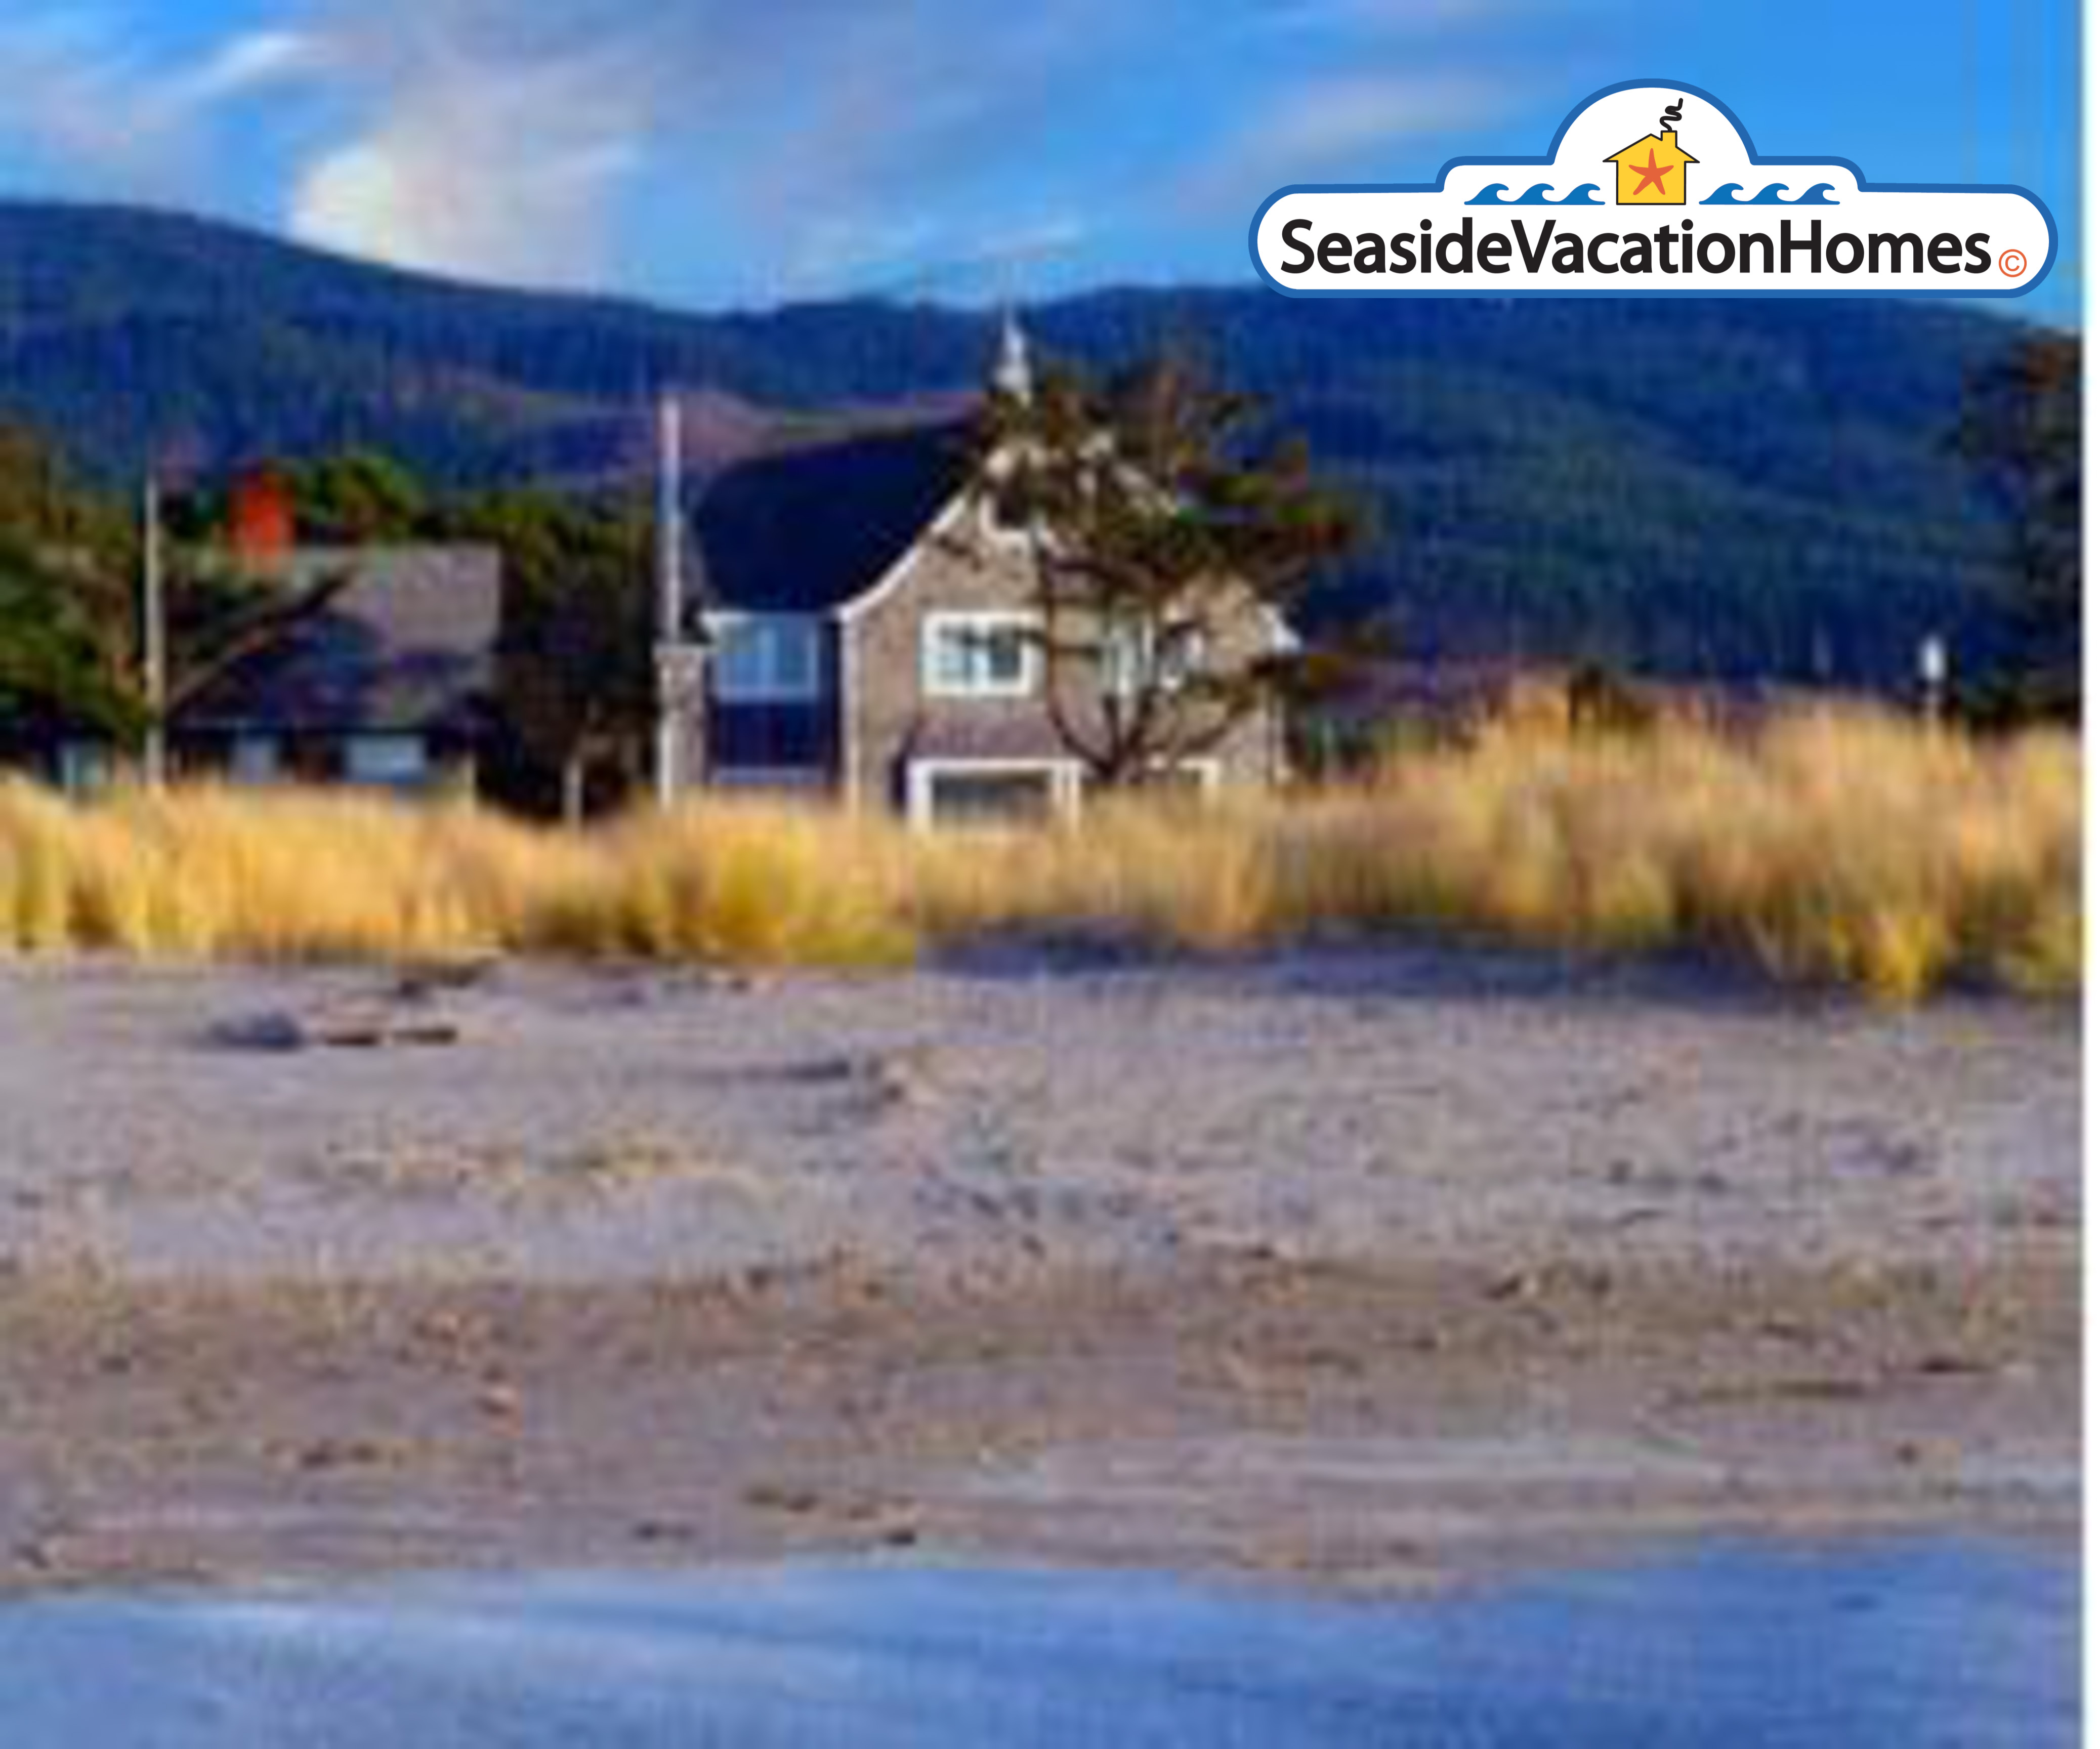 Seaside, OR Vacation home rentals